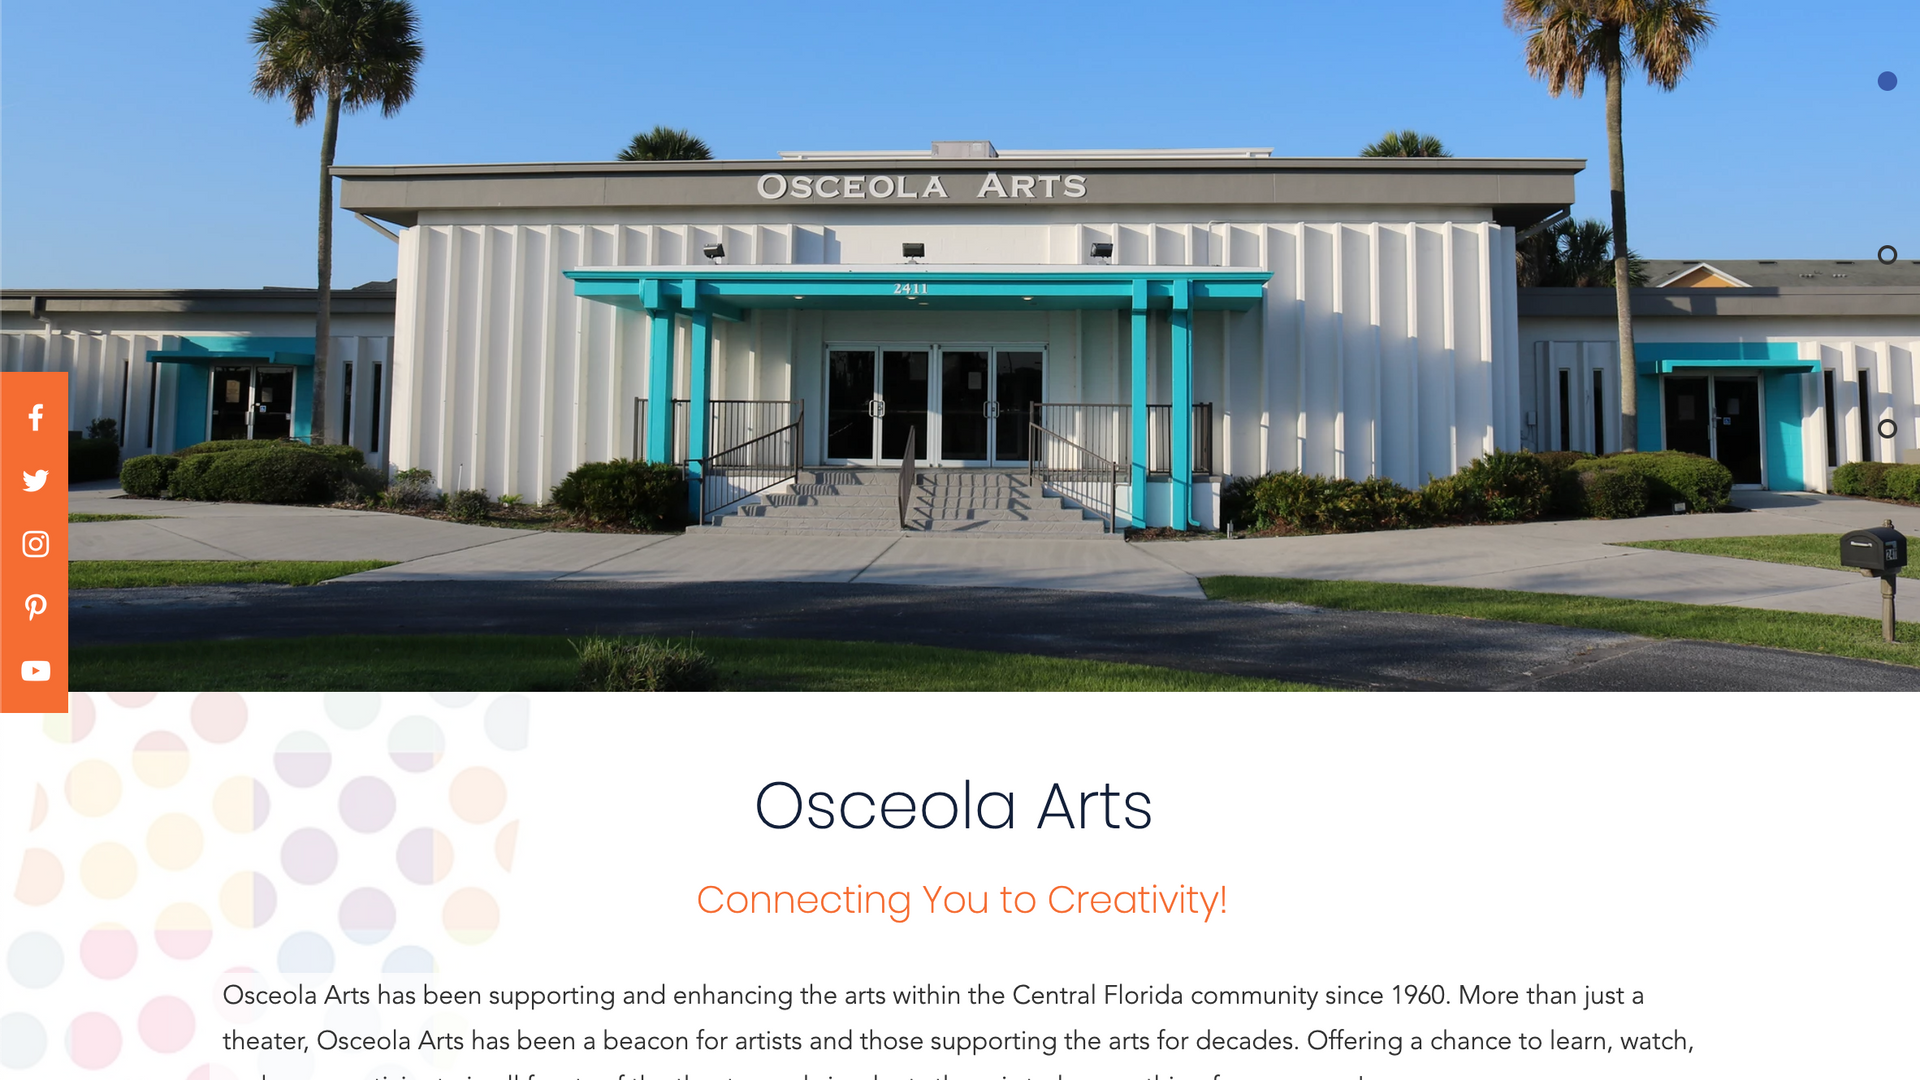 OsceolaArts.org home page